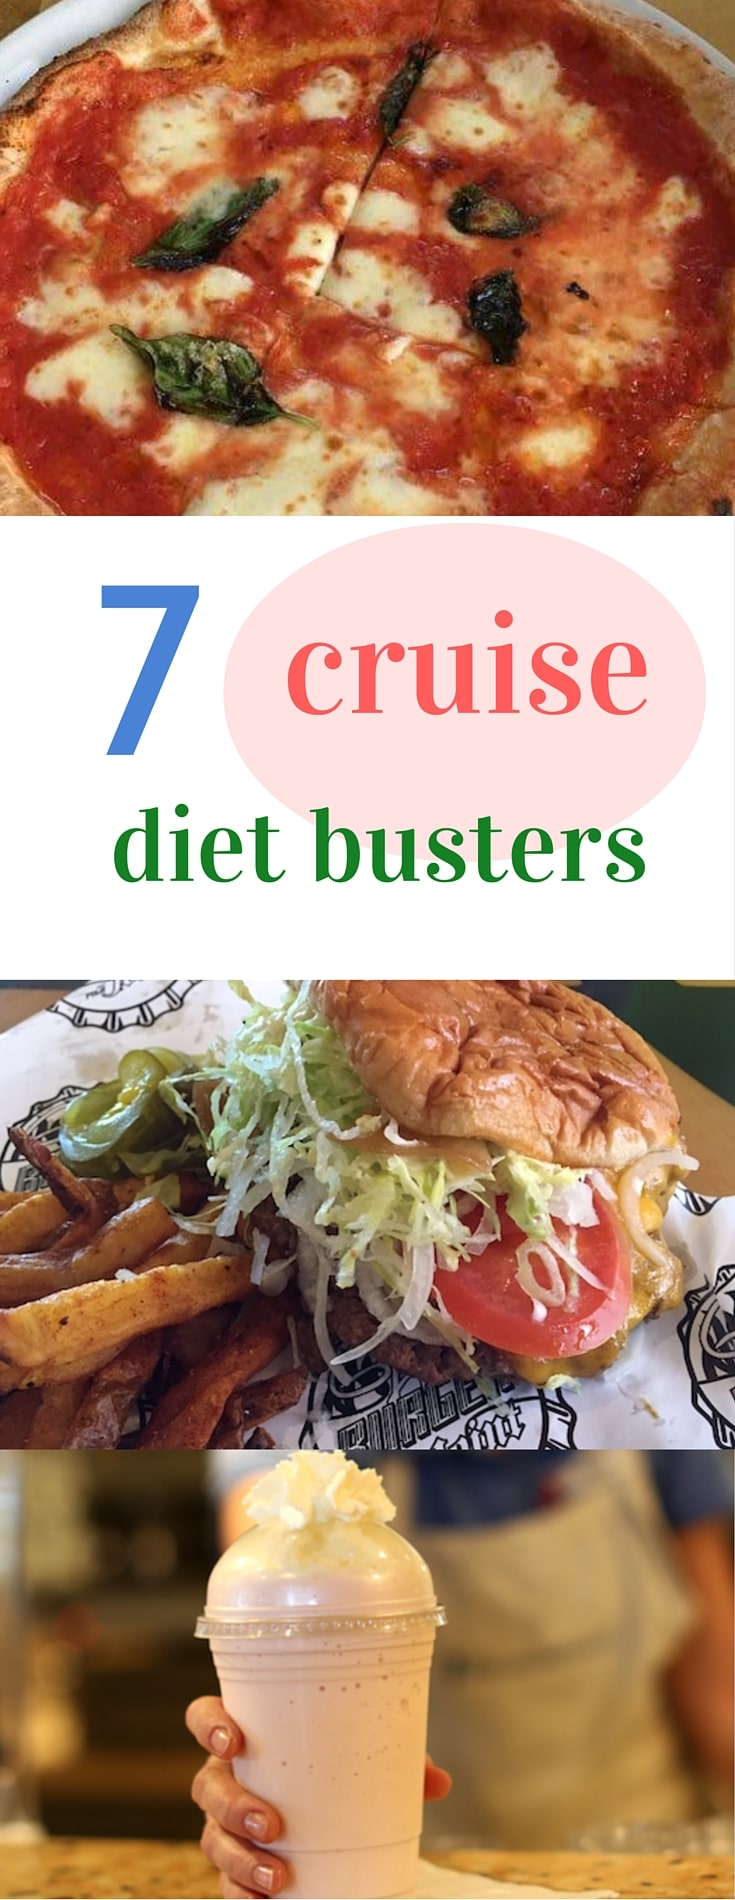 #food #diet #healthy #cruise #travel #traveltips #vacation